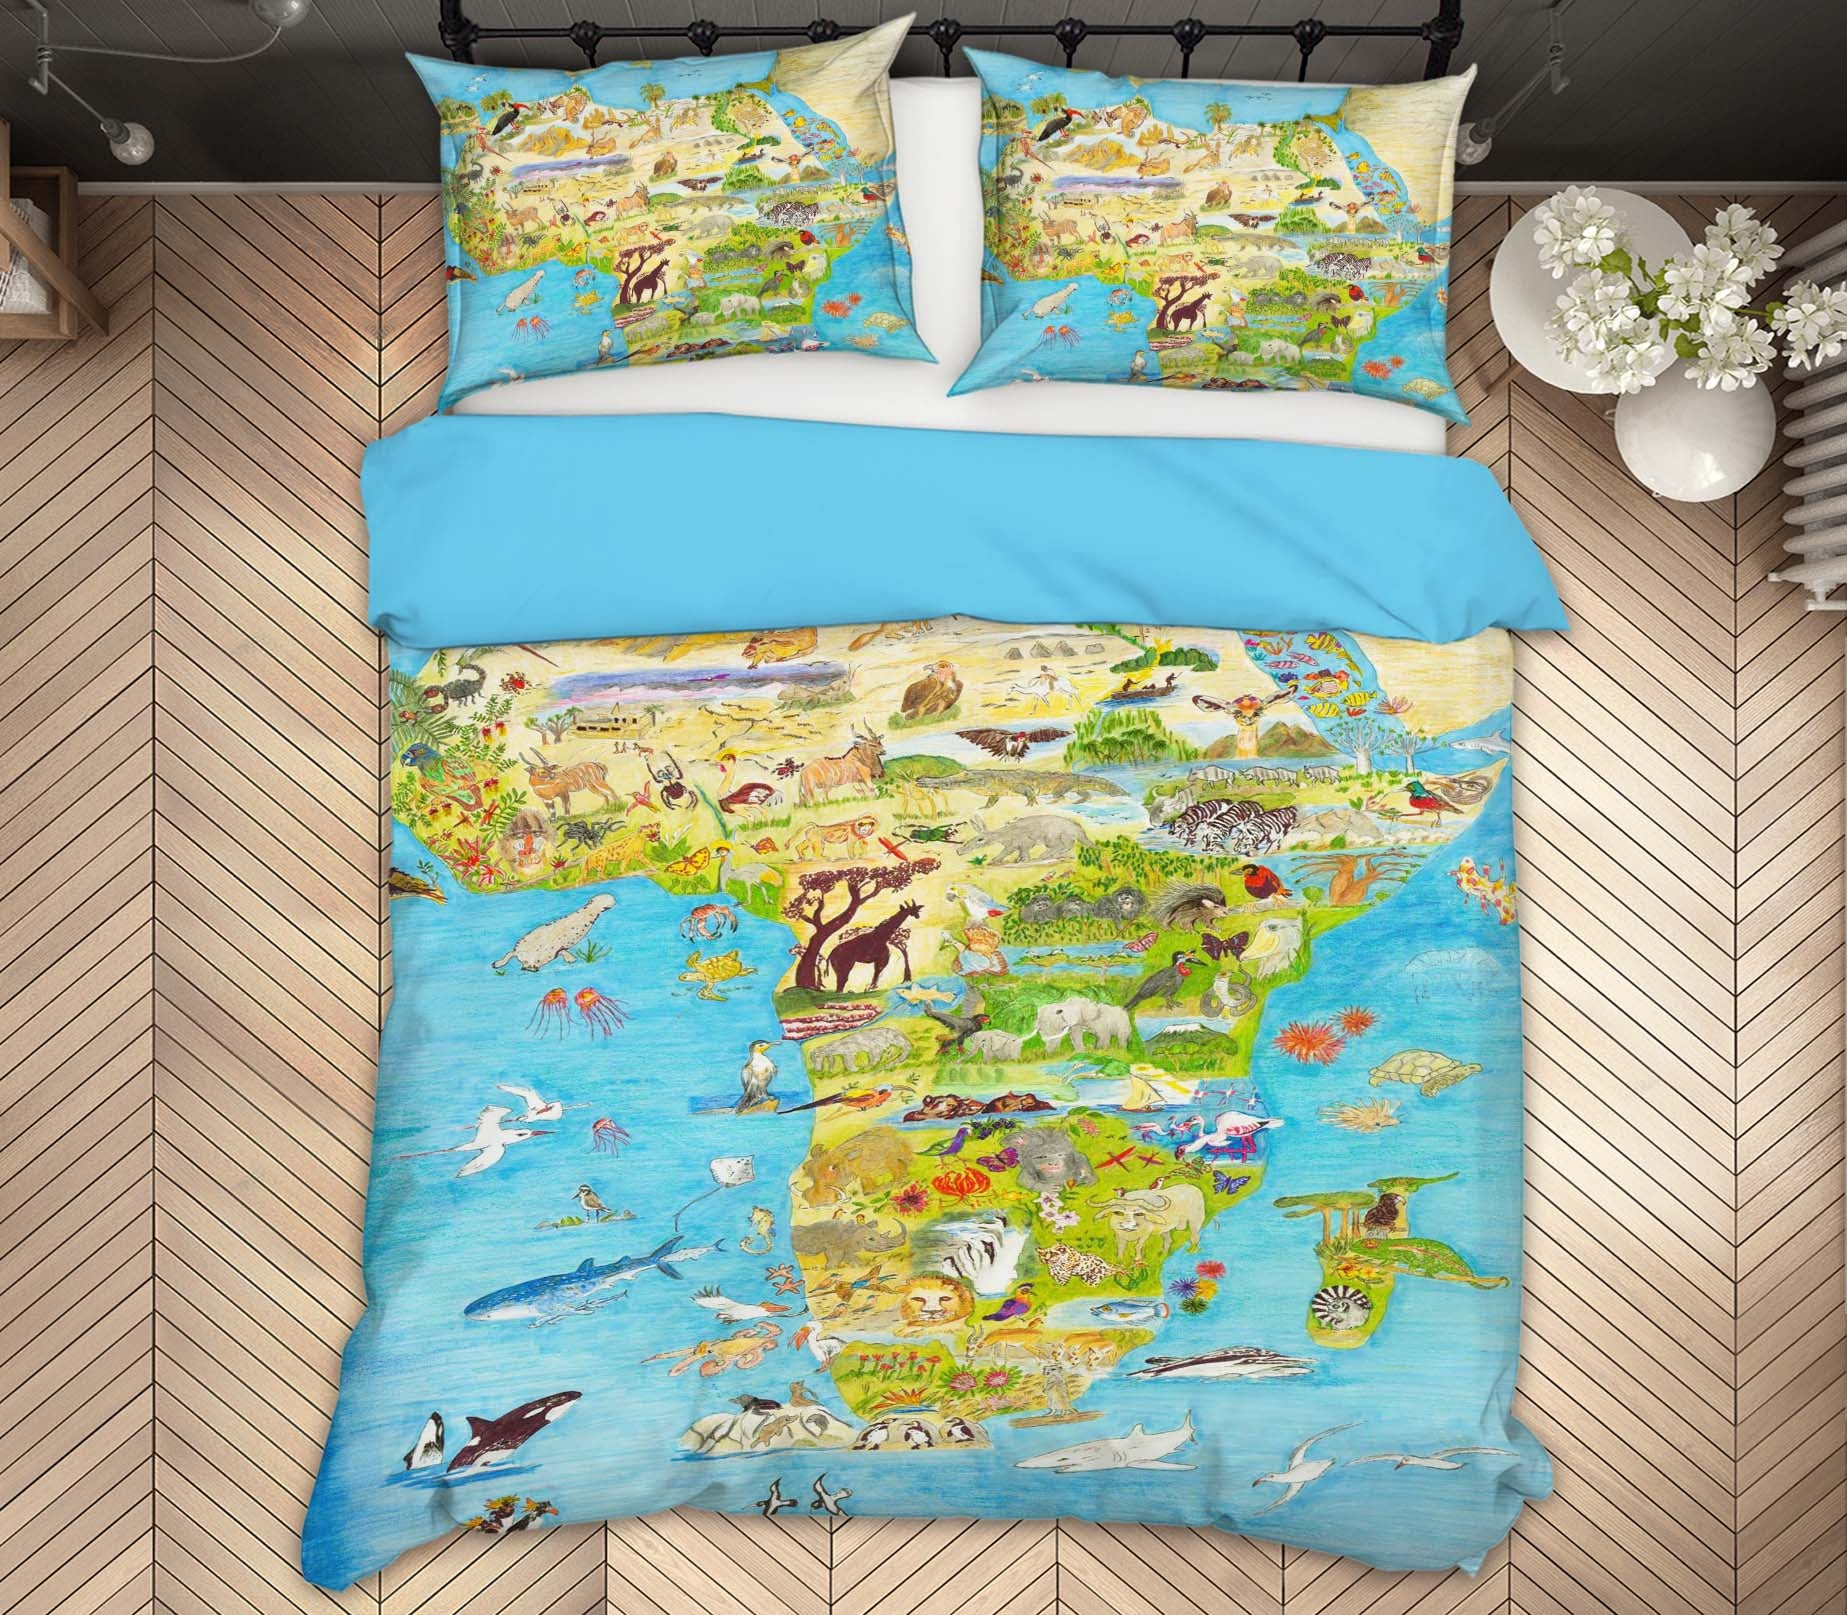 3D Africa Animal Pattern 018 Michael Sewell Bedding Bed Pillowcases Quilt